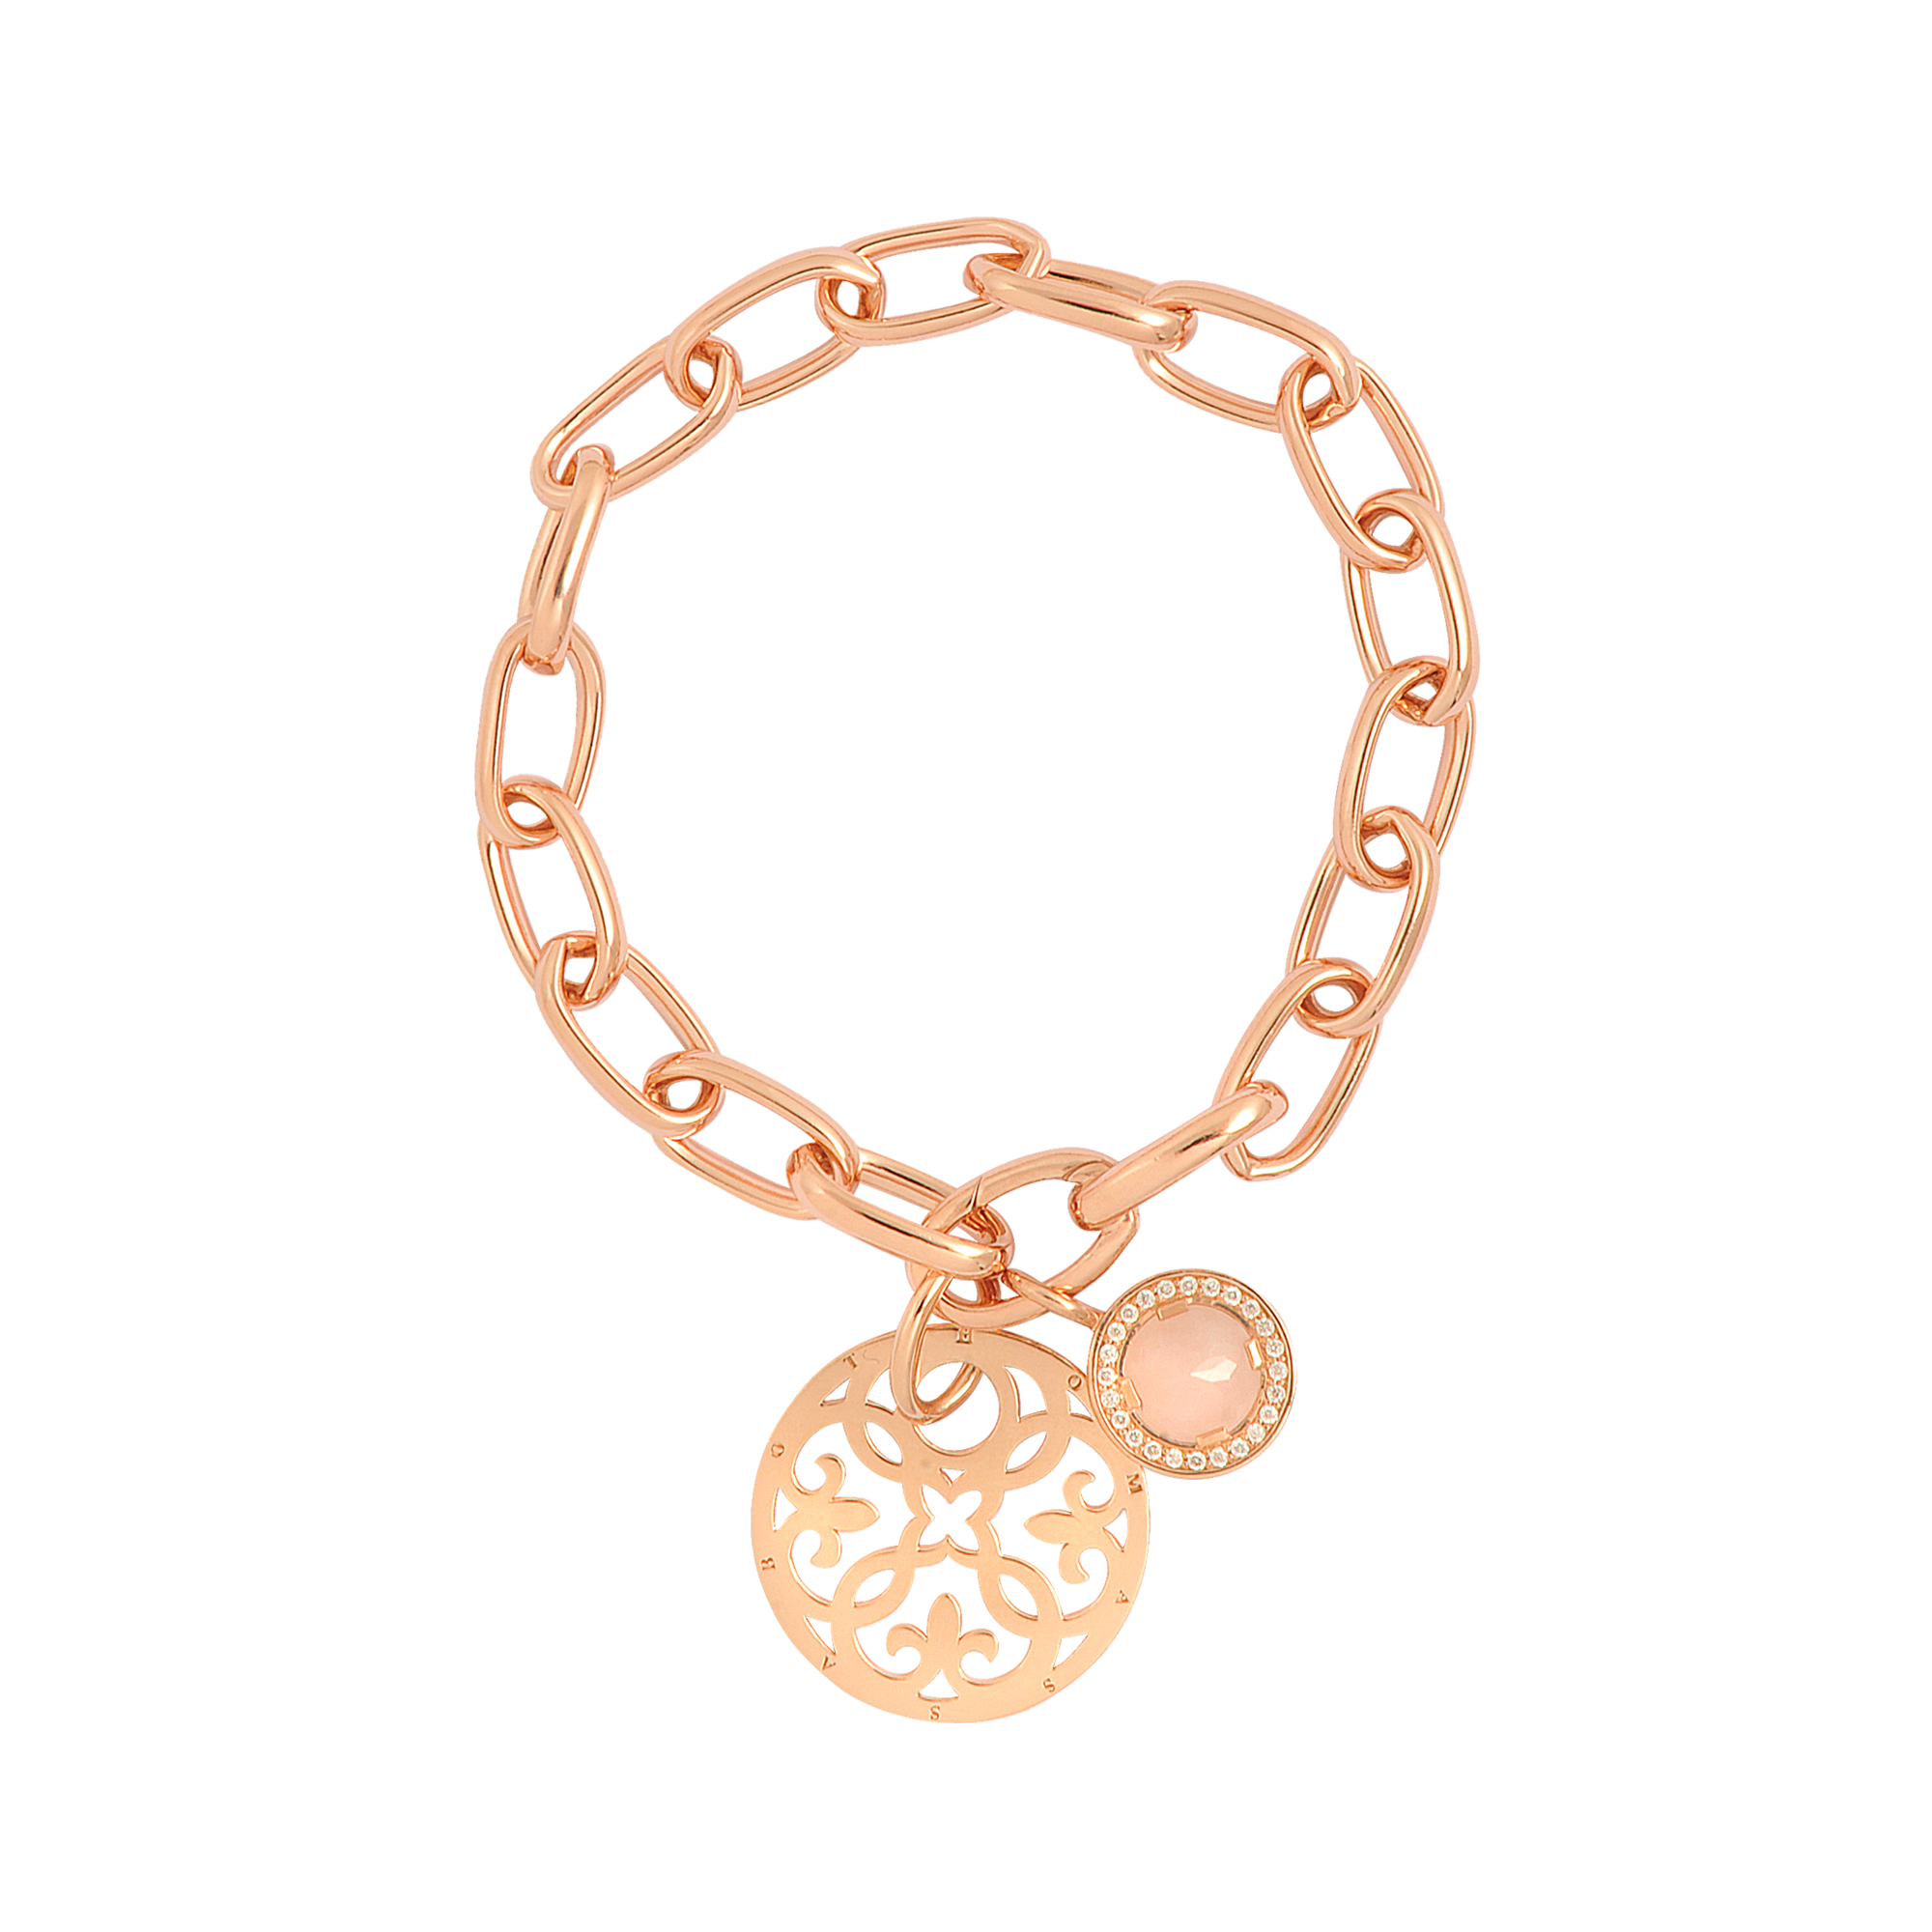 Thomas sabo charm bracelet rose gold